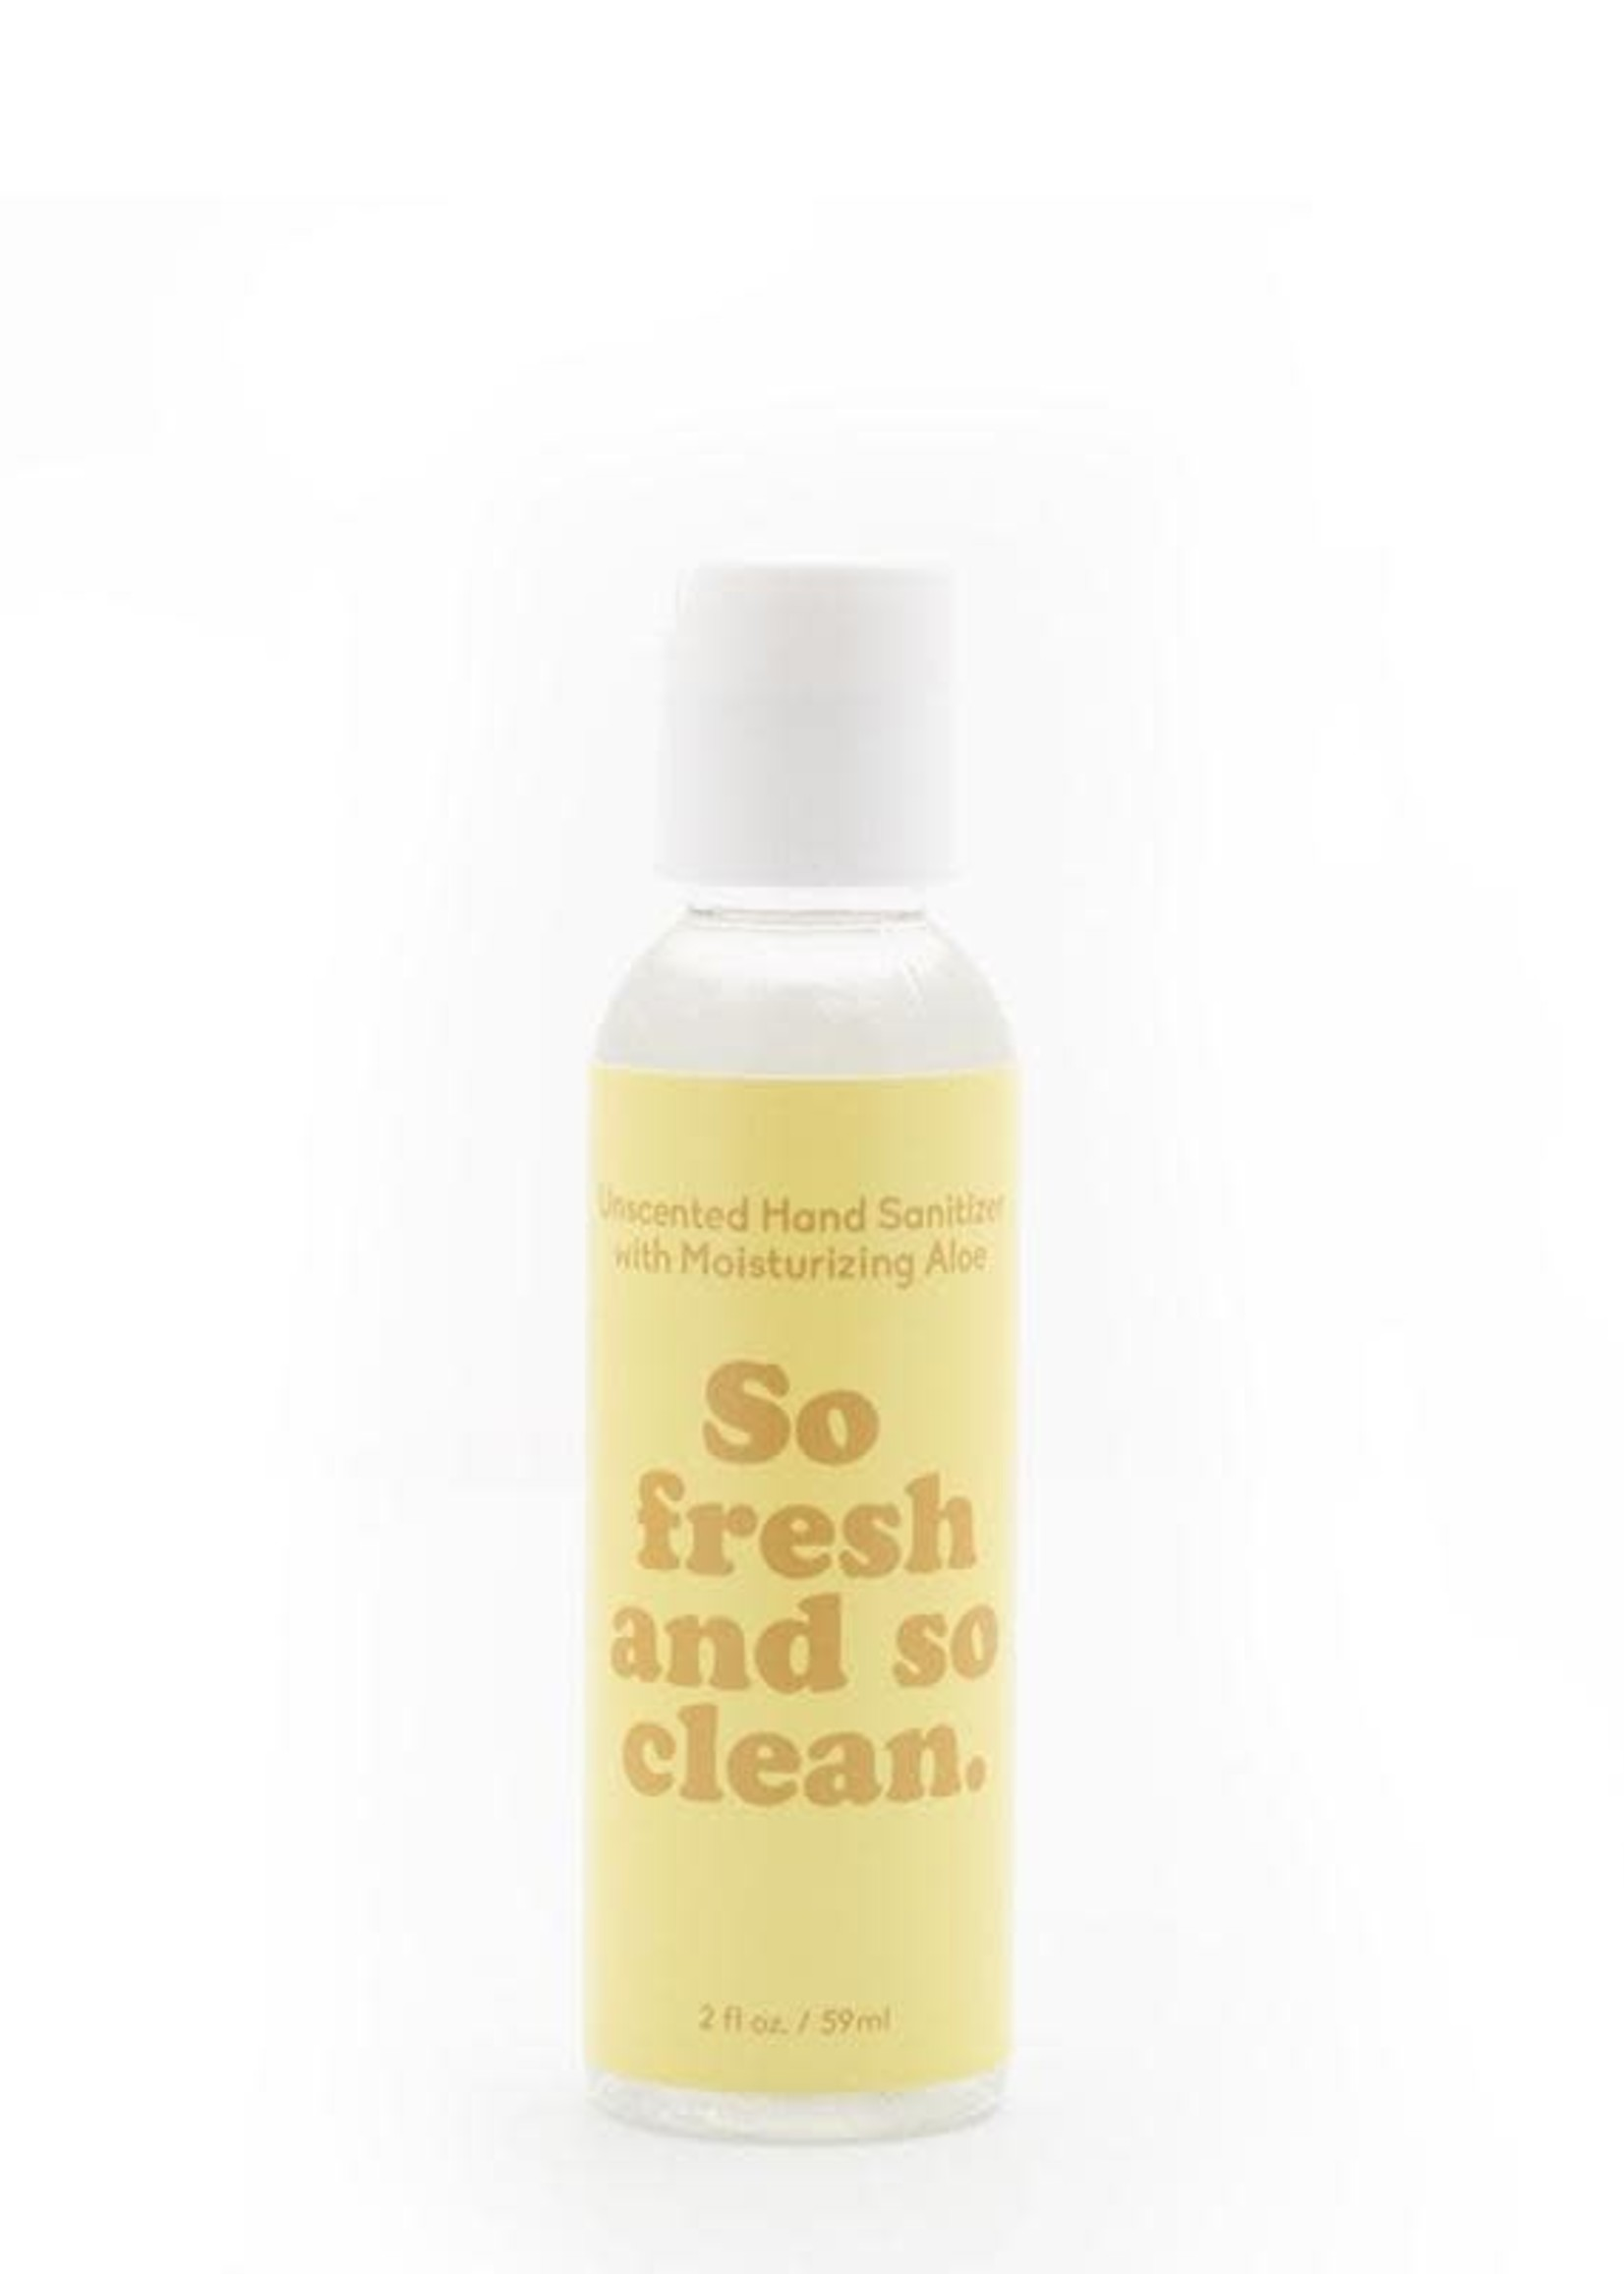 PADDYWAX PADDYWAX HAND SANITIZER - SO FRESH AND SO CLEAN